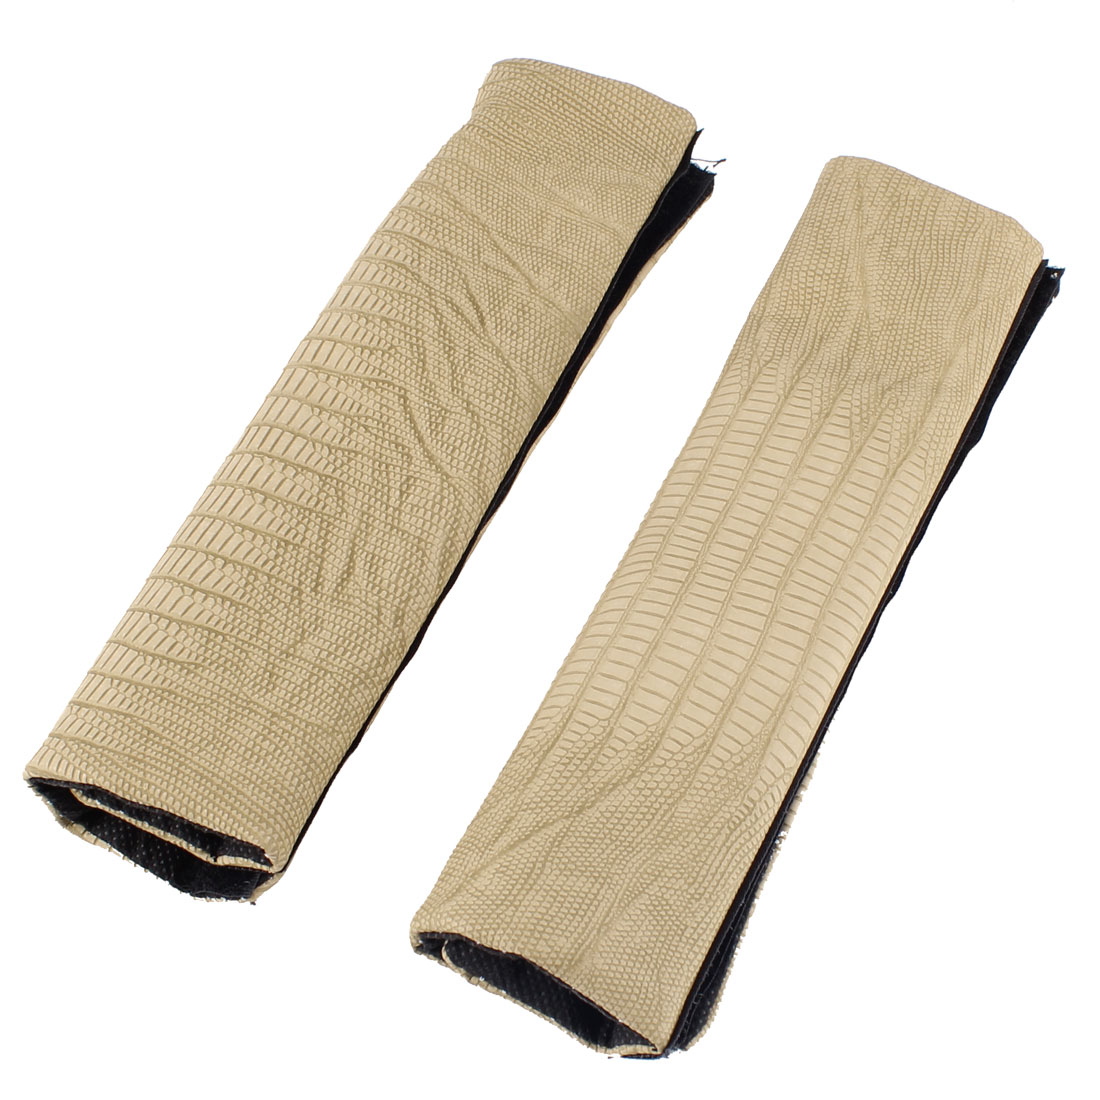 2 Pcs Beige Faux Leather Crocodile Pattern Seatbelt Covers for Vehicles Cars